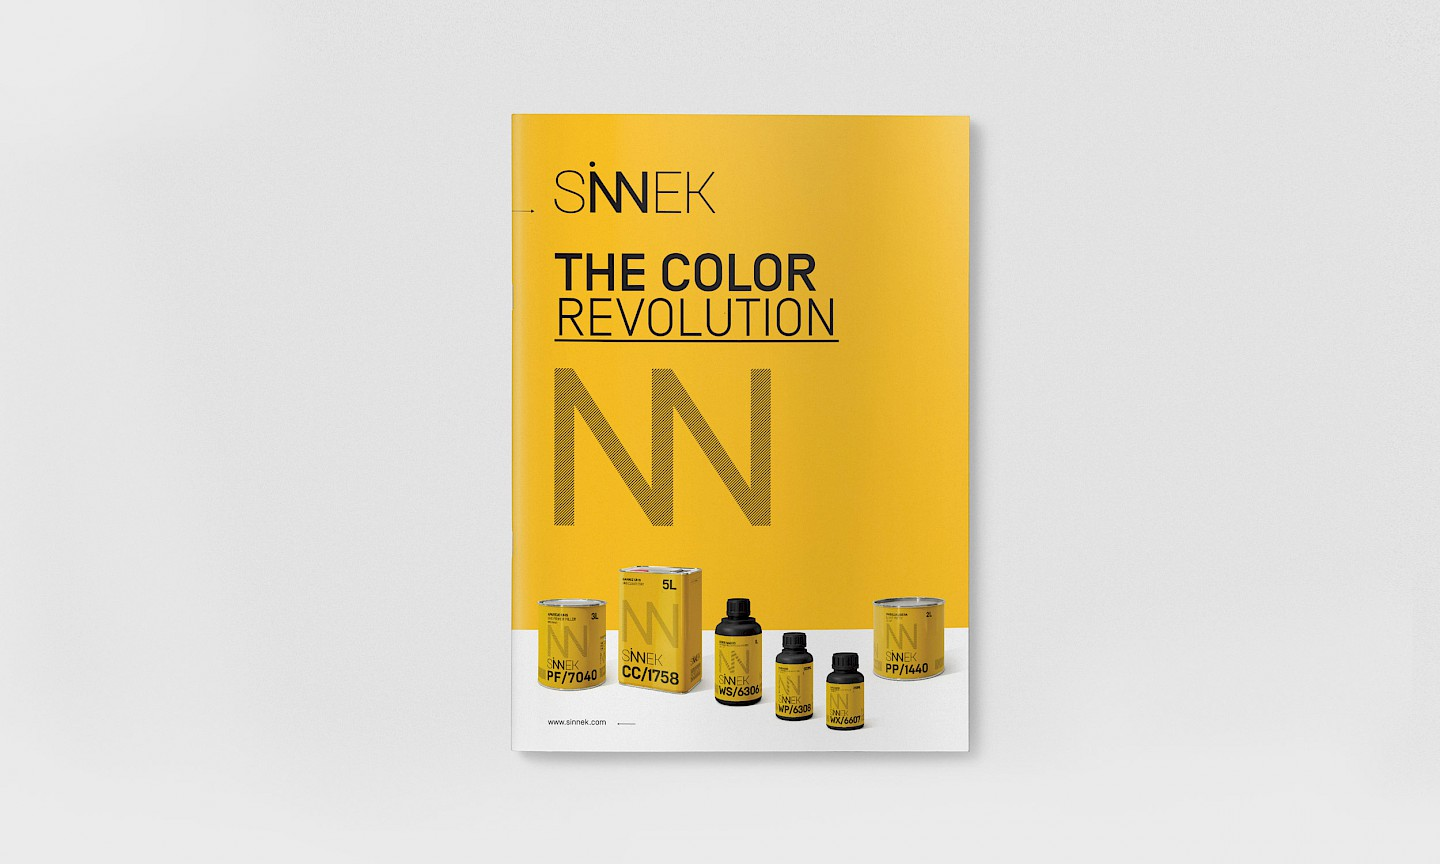 catalogo sinnek move branding